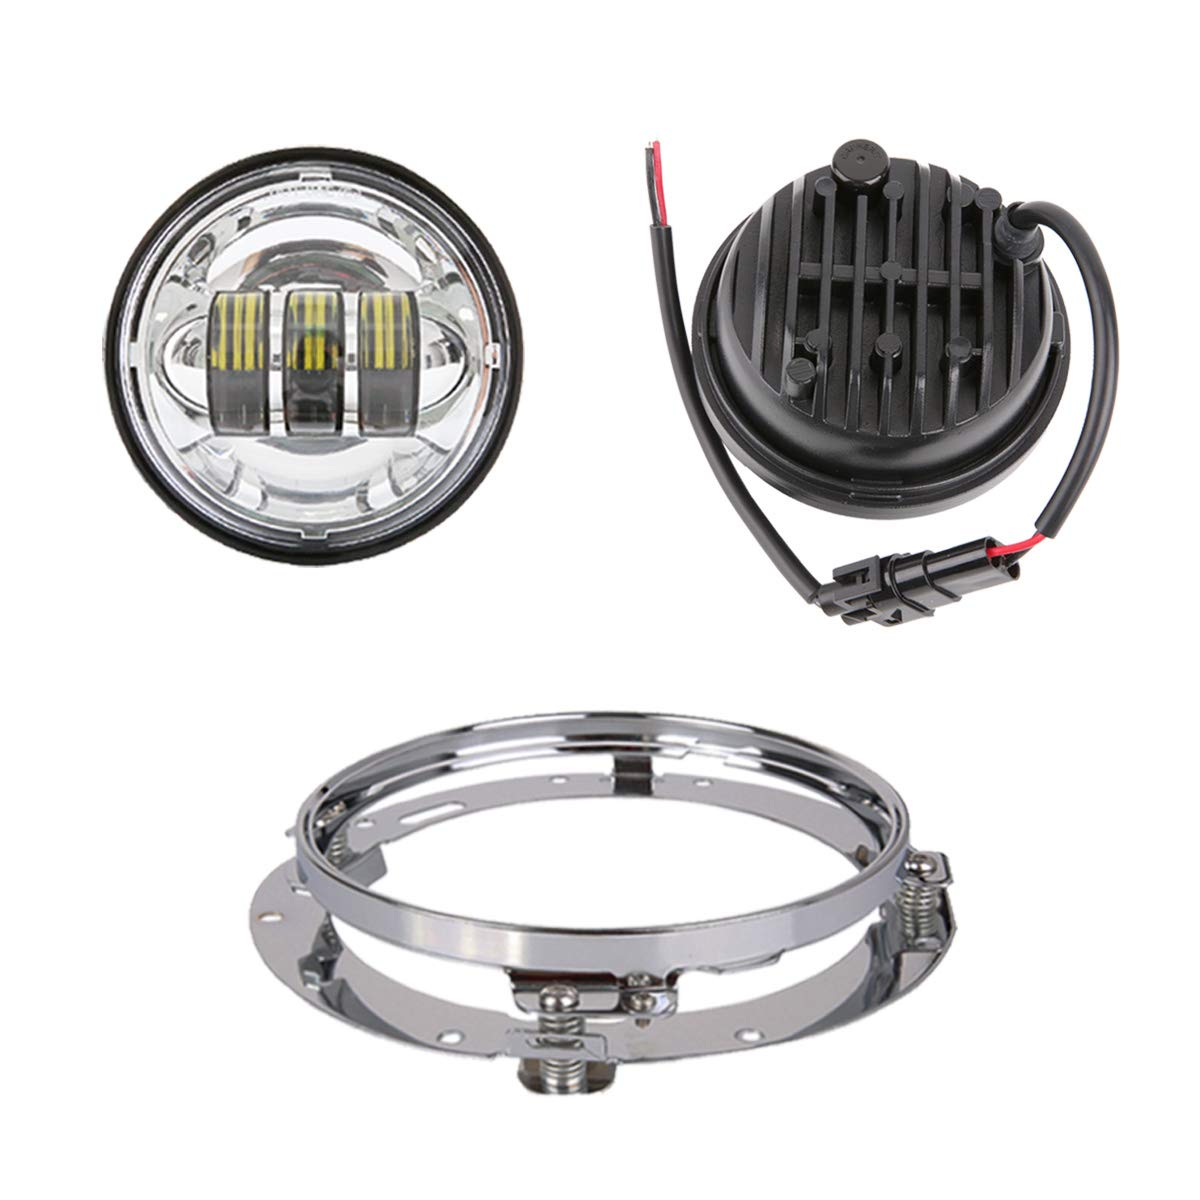 Z-OFFROAD 7 inch LED Headlight Fog Passing Lights Motorcycle Headlamp for Harley Davidson Touring Road King Ultra Classic Electra Street Glide Heritage Softail Slim Deluxe Tri Cvo Fatboy Z-018800E